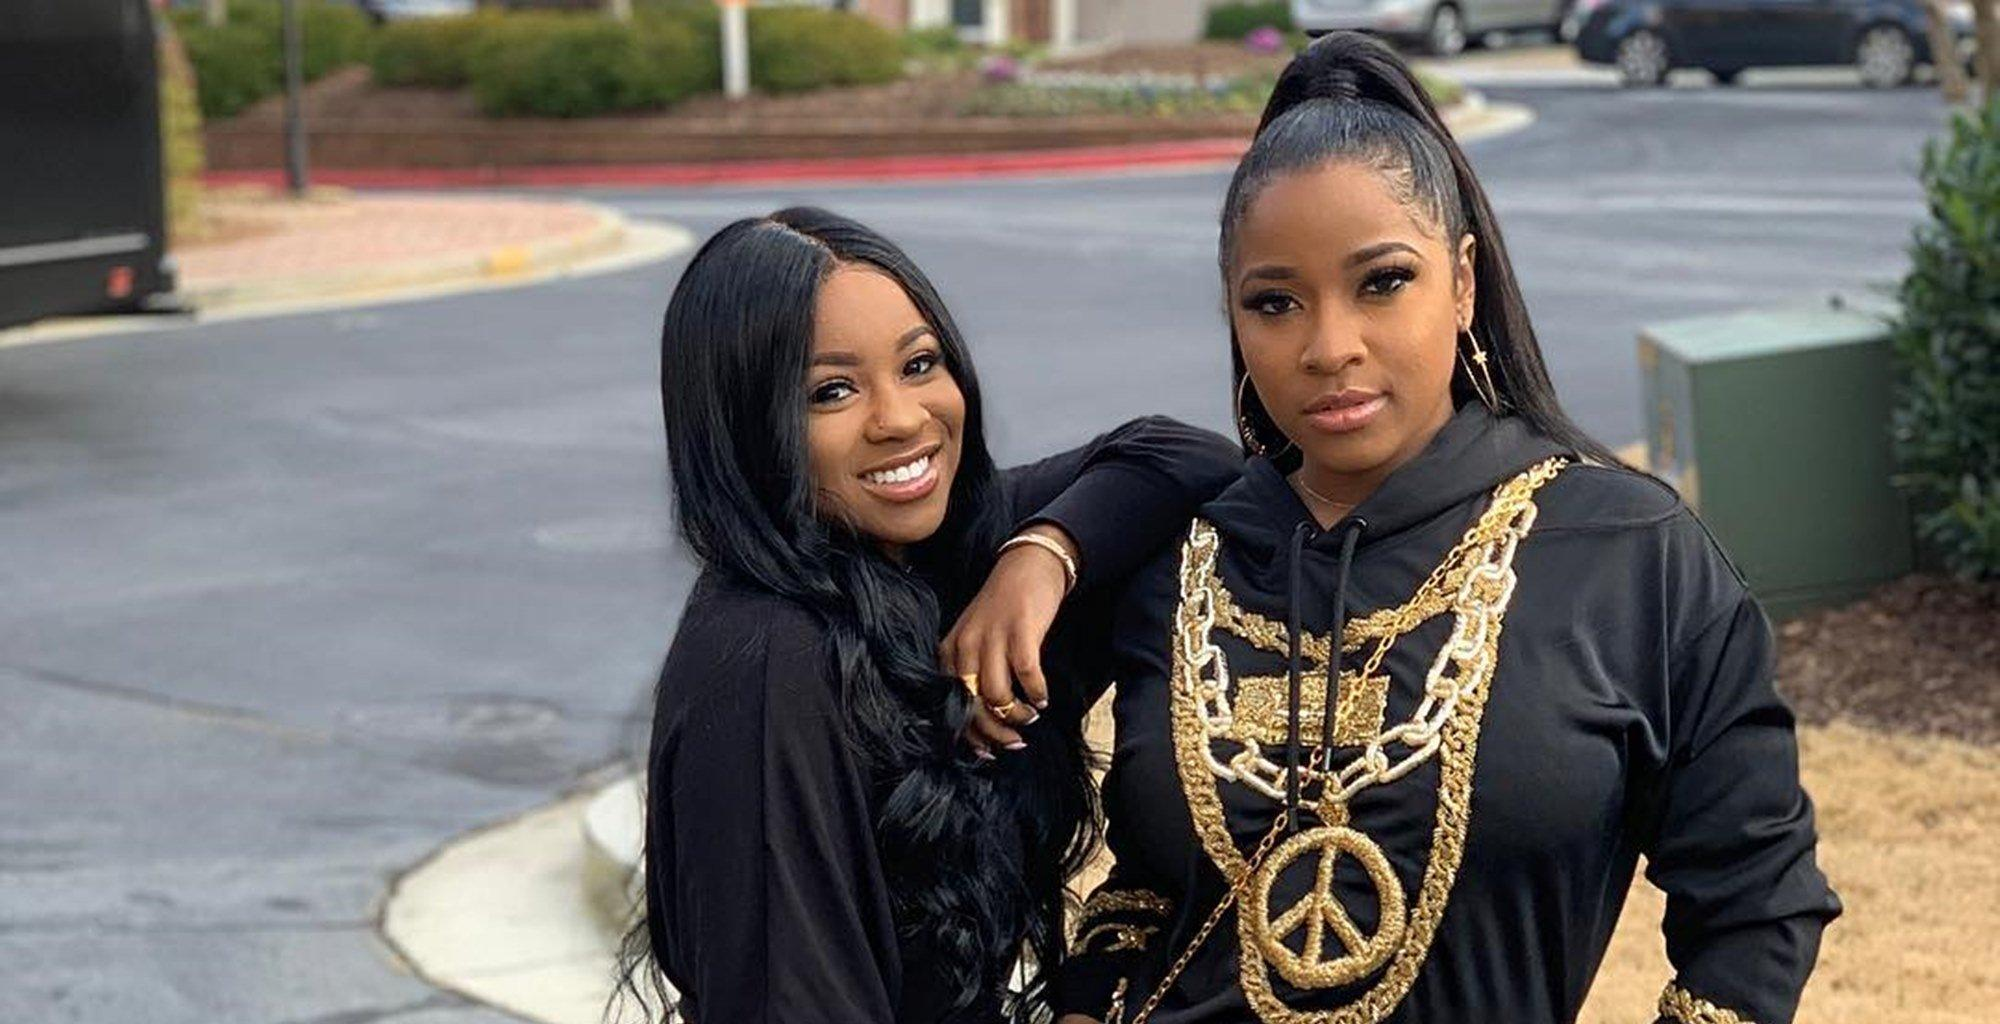 Toya Johnson Poses With Reginae Carter And Fans Are Simply In Love With The Photo